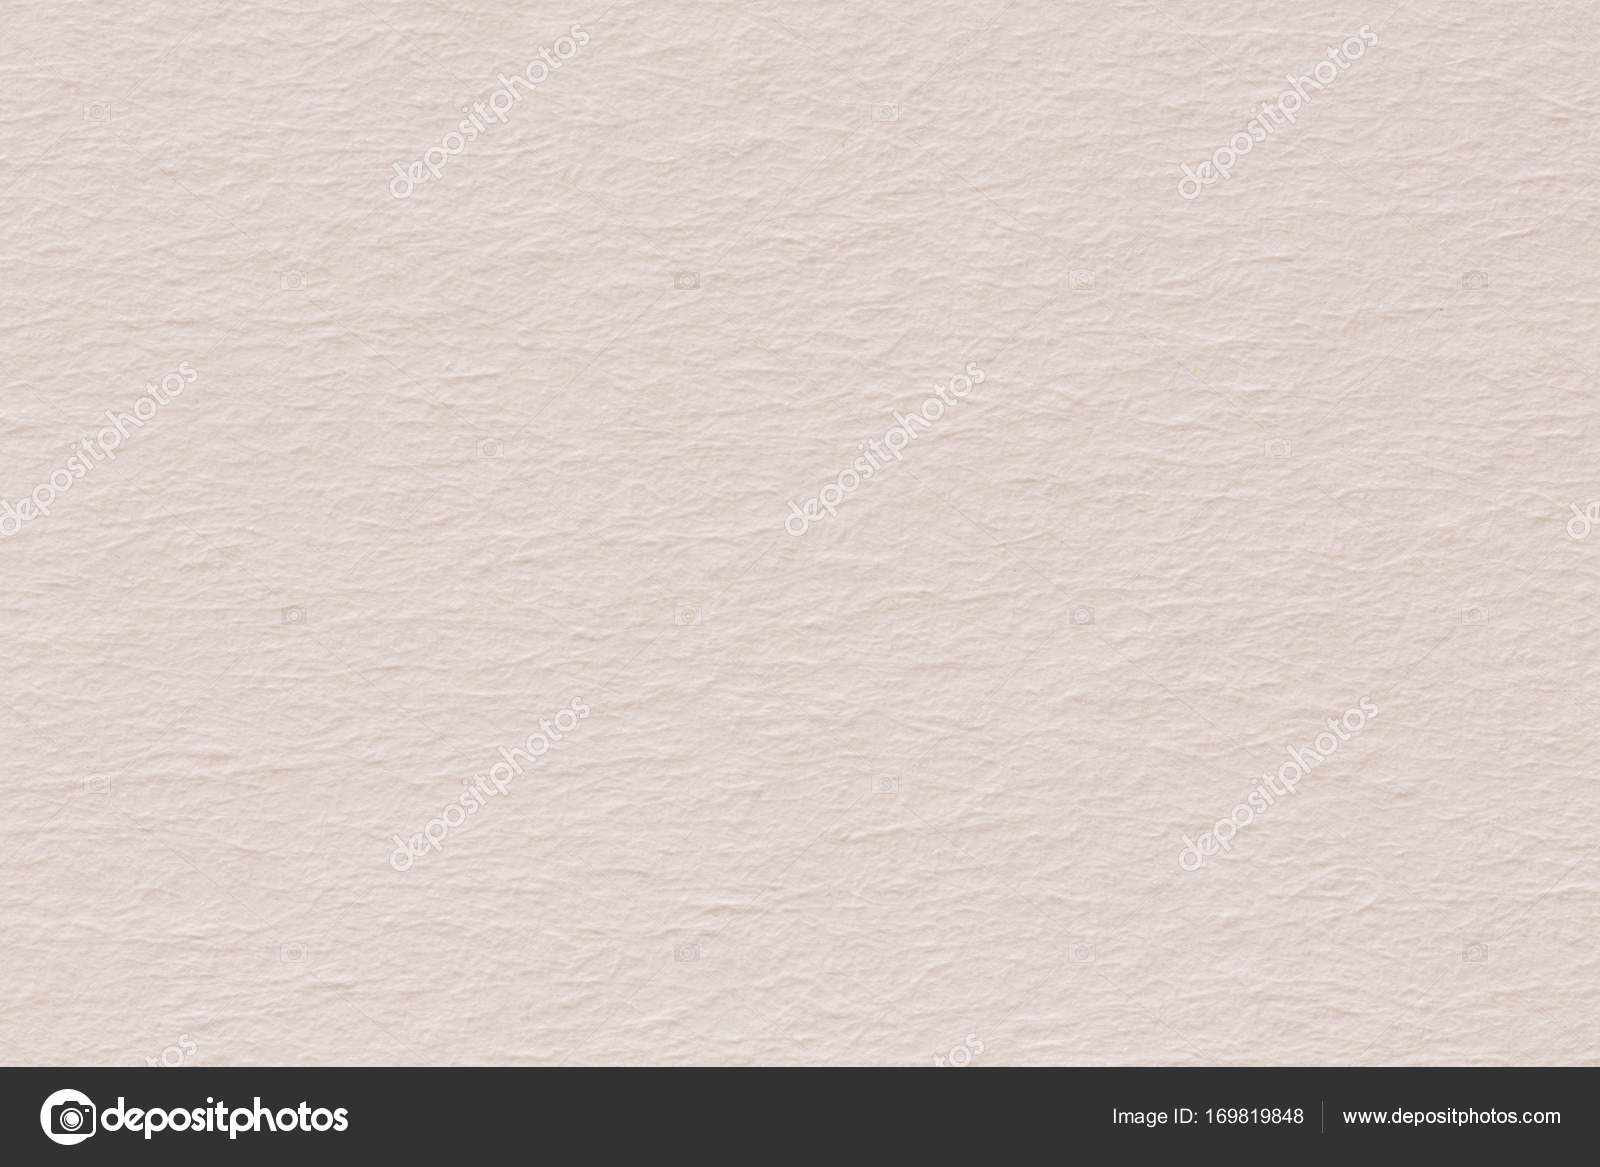 paper texture light rough textured spotted blank copy space back